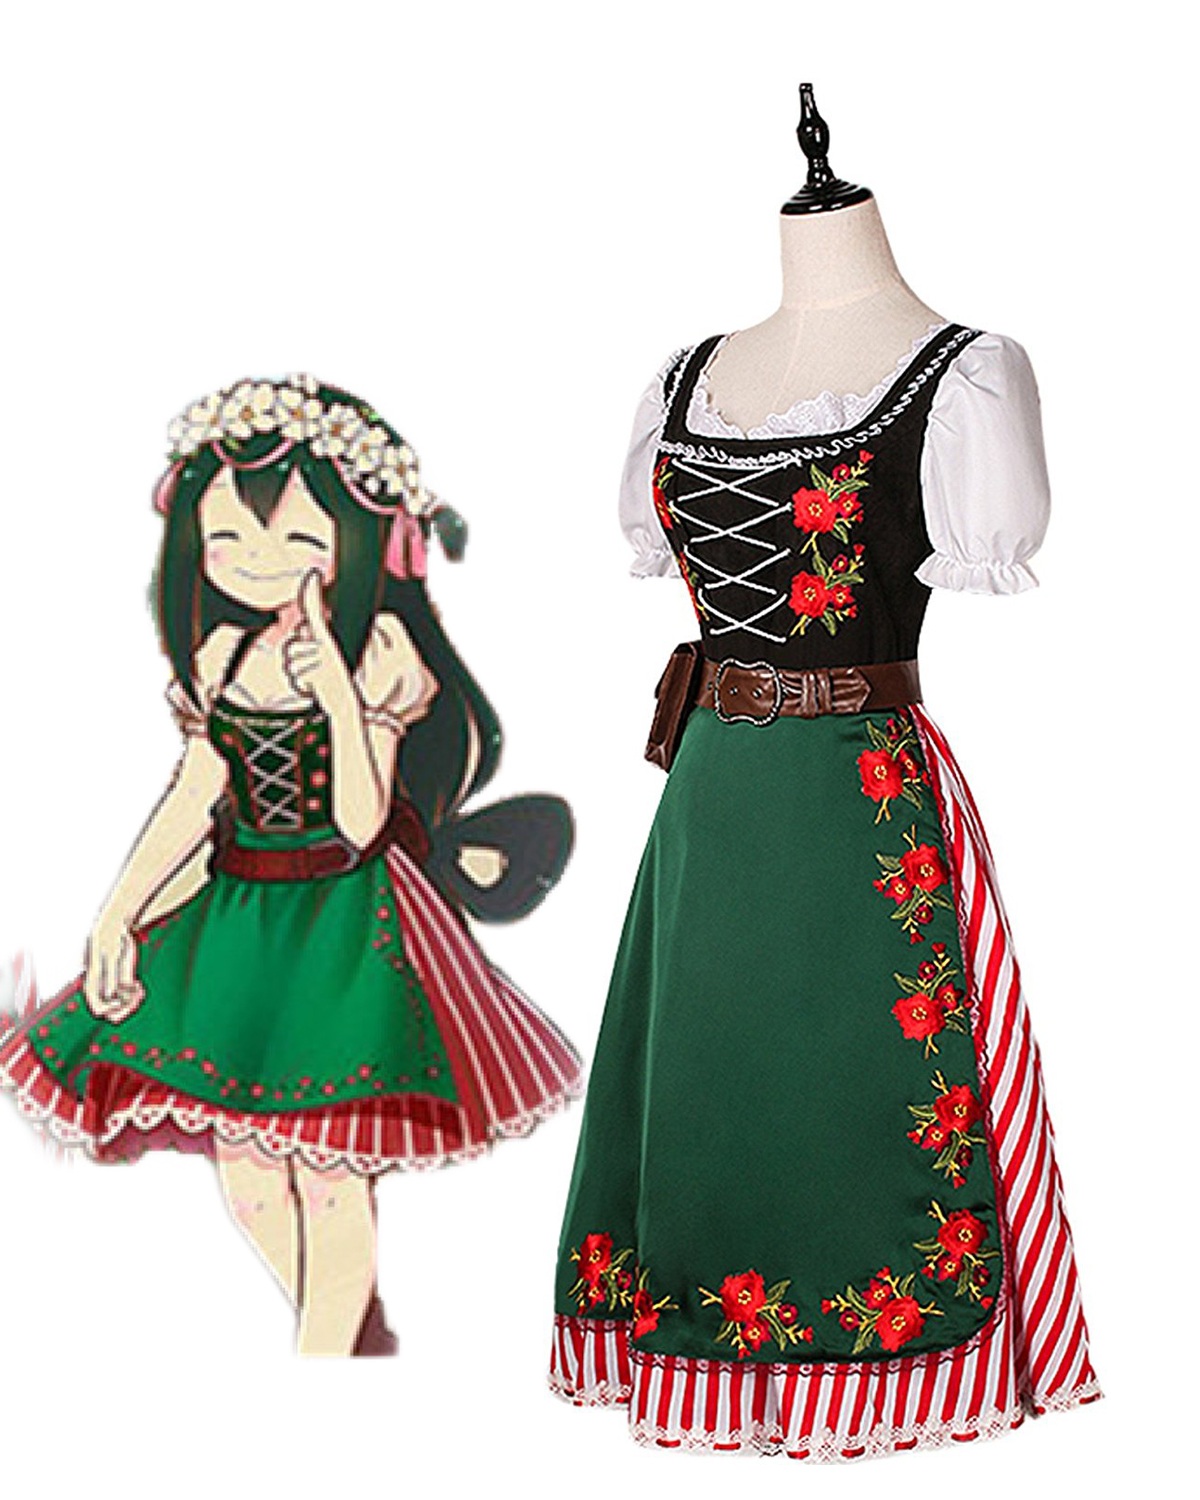 Tsuyu Asui Dress My Hero Academia Tsuyu Asui Cosplay Costume Lolita Dress Boku No Hero Academia Cosplay Custom Made